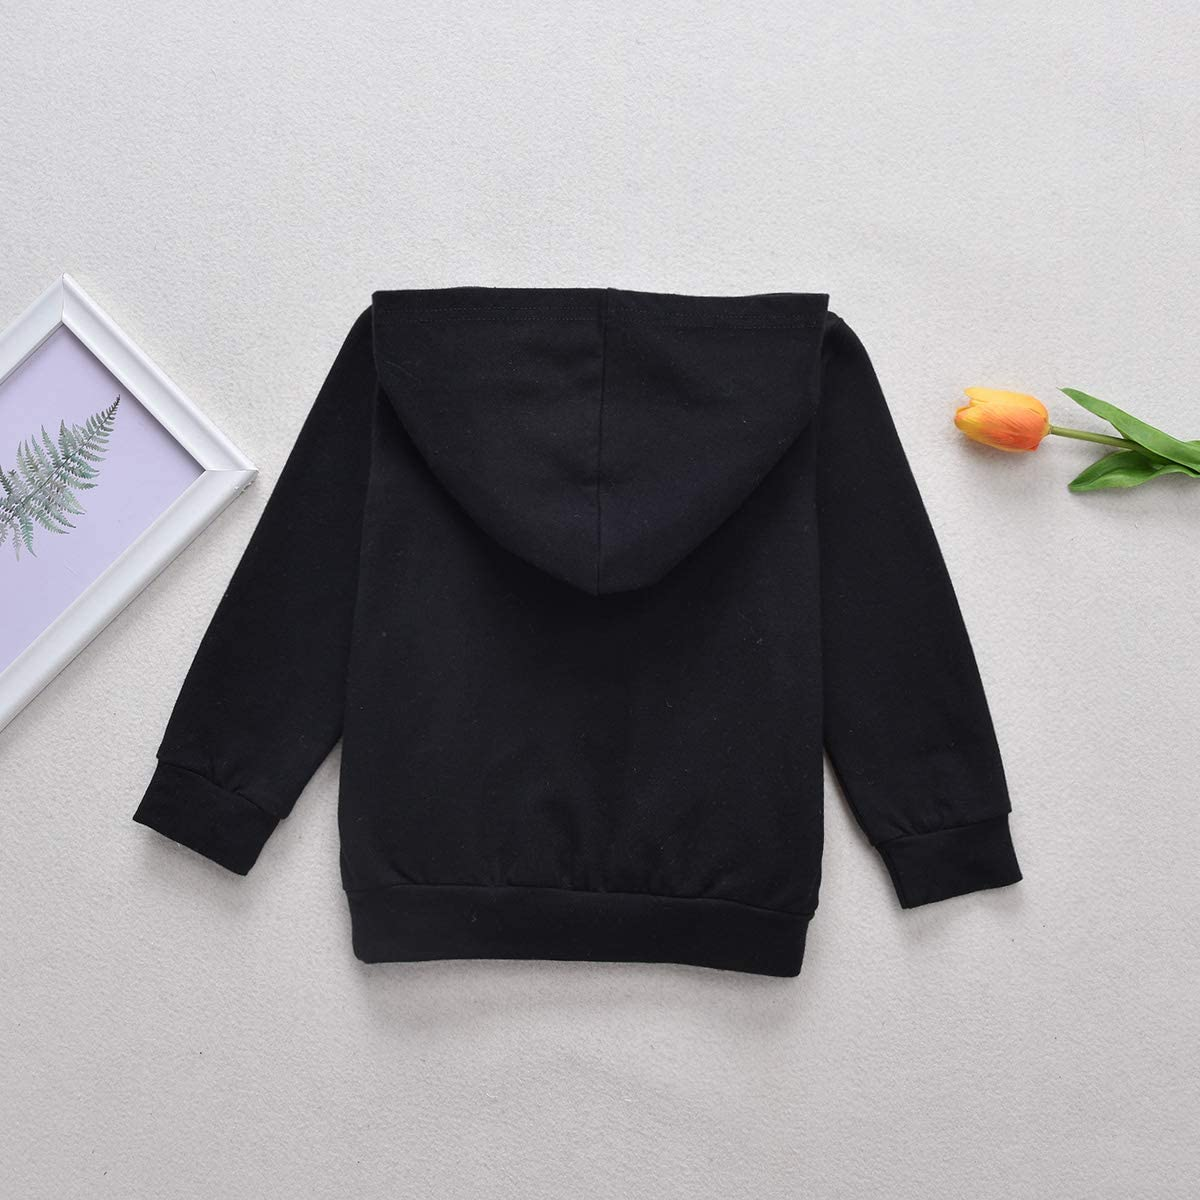 Toddler Boy Girls Hoodies Outfits Mini Boss Sweatshirt Casual Tops Pocket Sweater Cotton Clothes